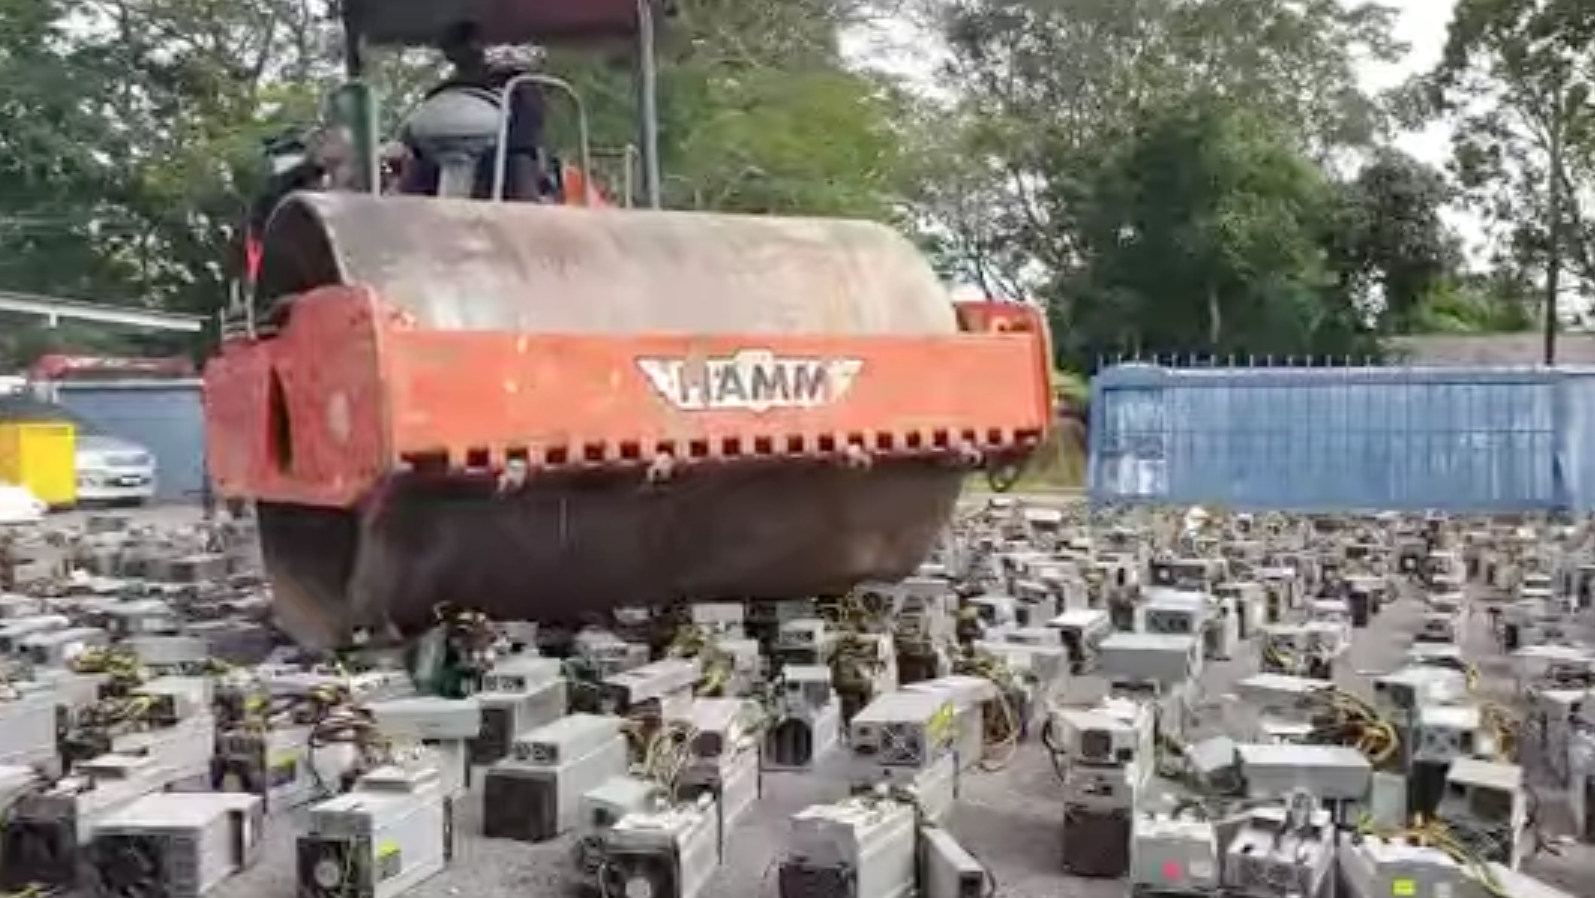 Malaysia publicly destroys computers used for crypto-mining photo from The Block